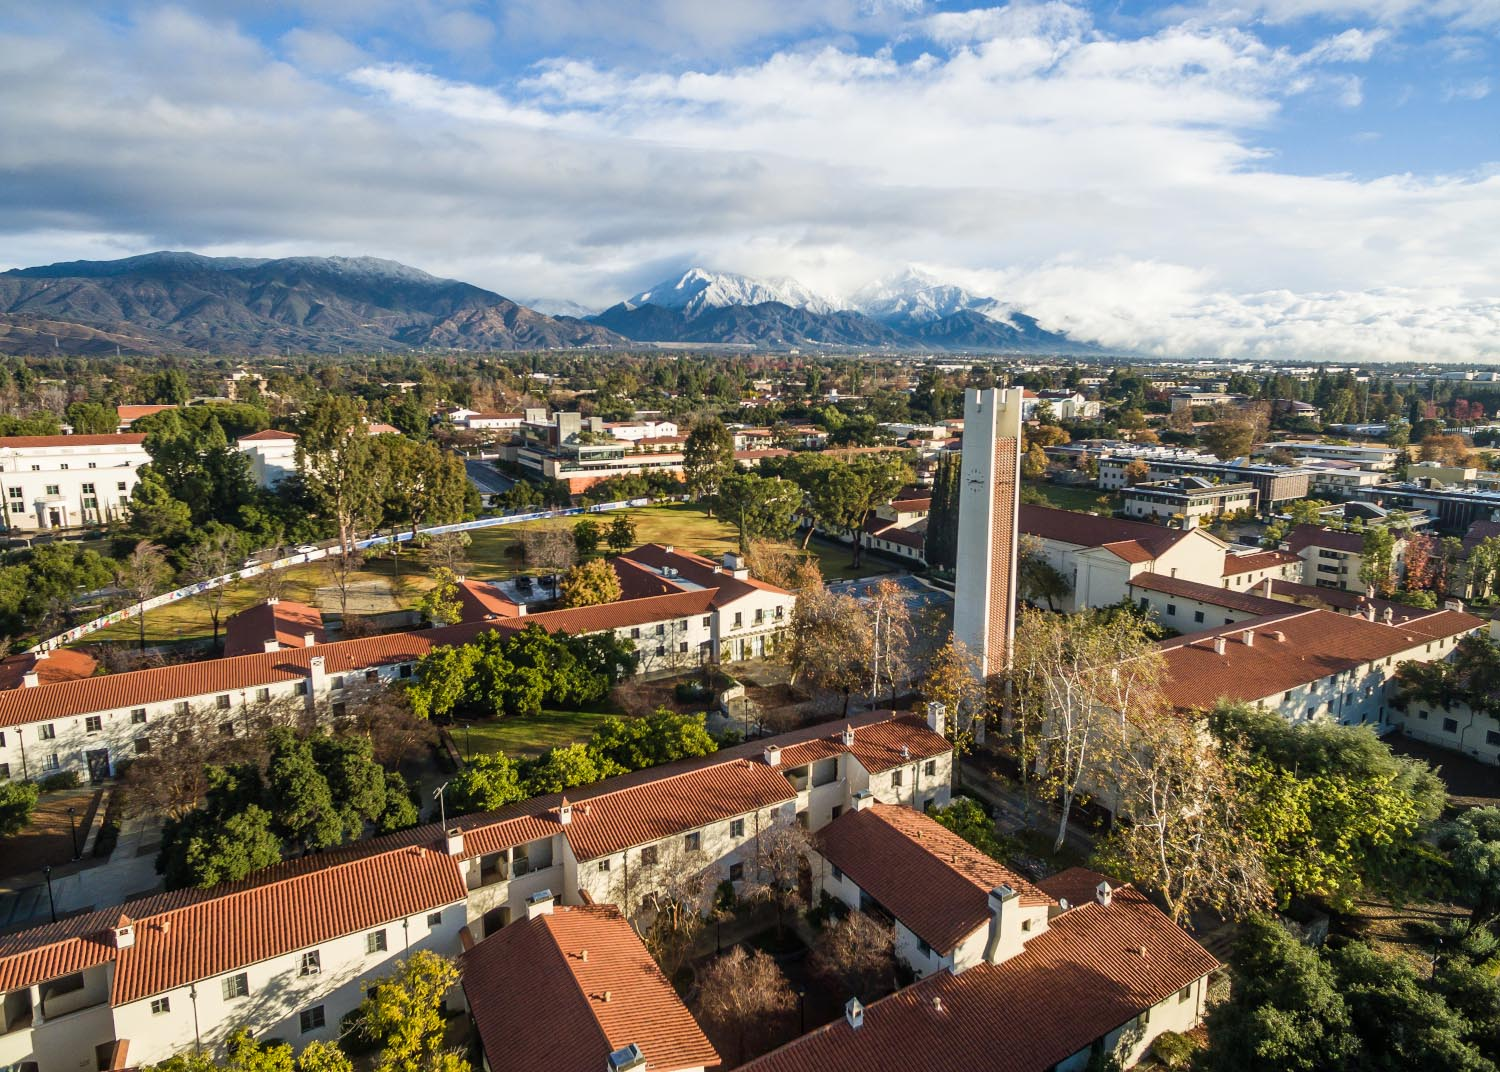 Pomona College Calendar 2021 Pomona College Adopts Test Optional Policy for Students Applying